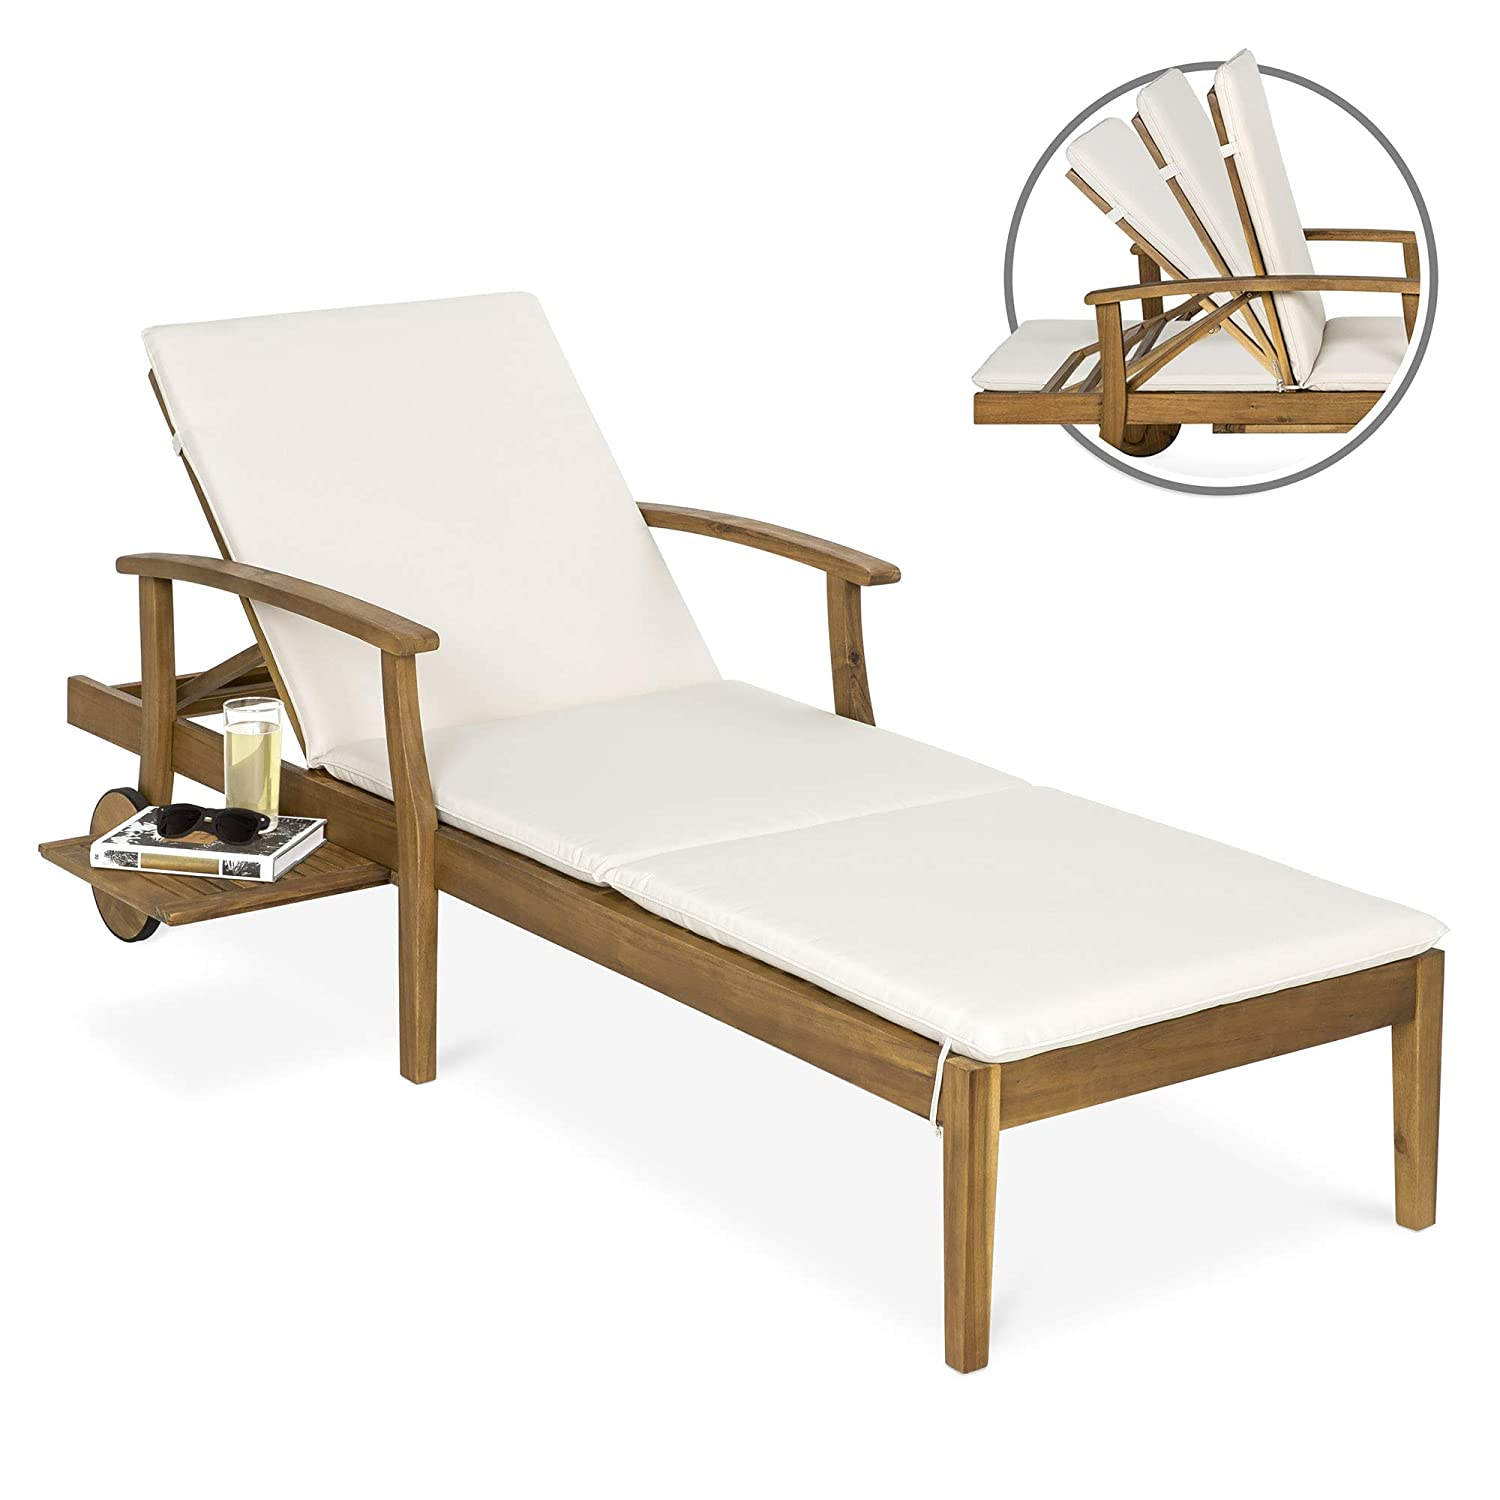 Best Choice Products 79x30in Acacia Wood Outdoor Chaise Lounge Chair w/Side Table, Adjustable Backrest, Cushion, Wheels